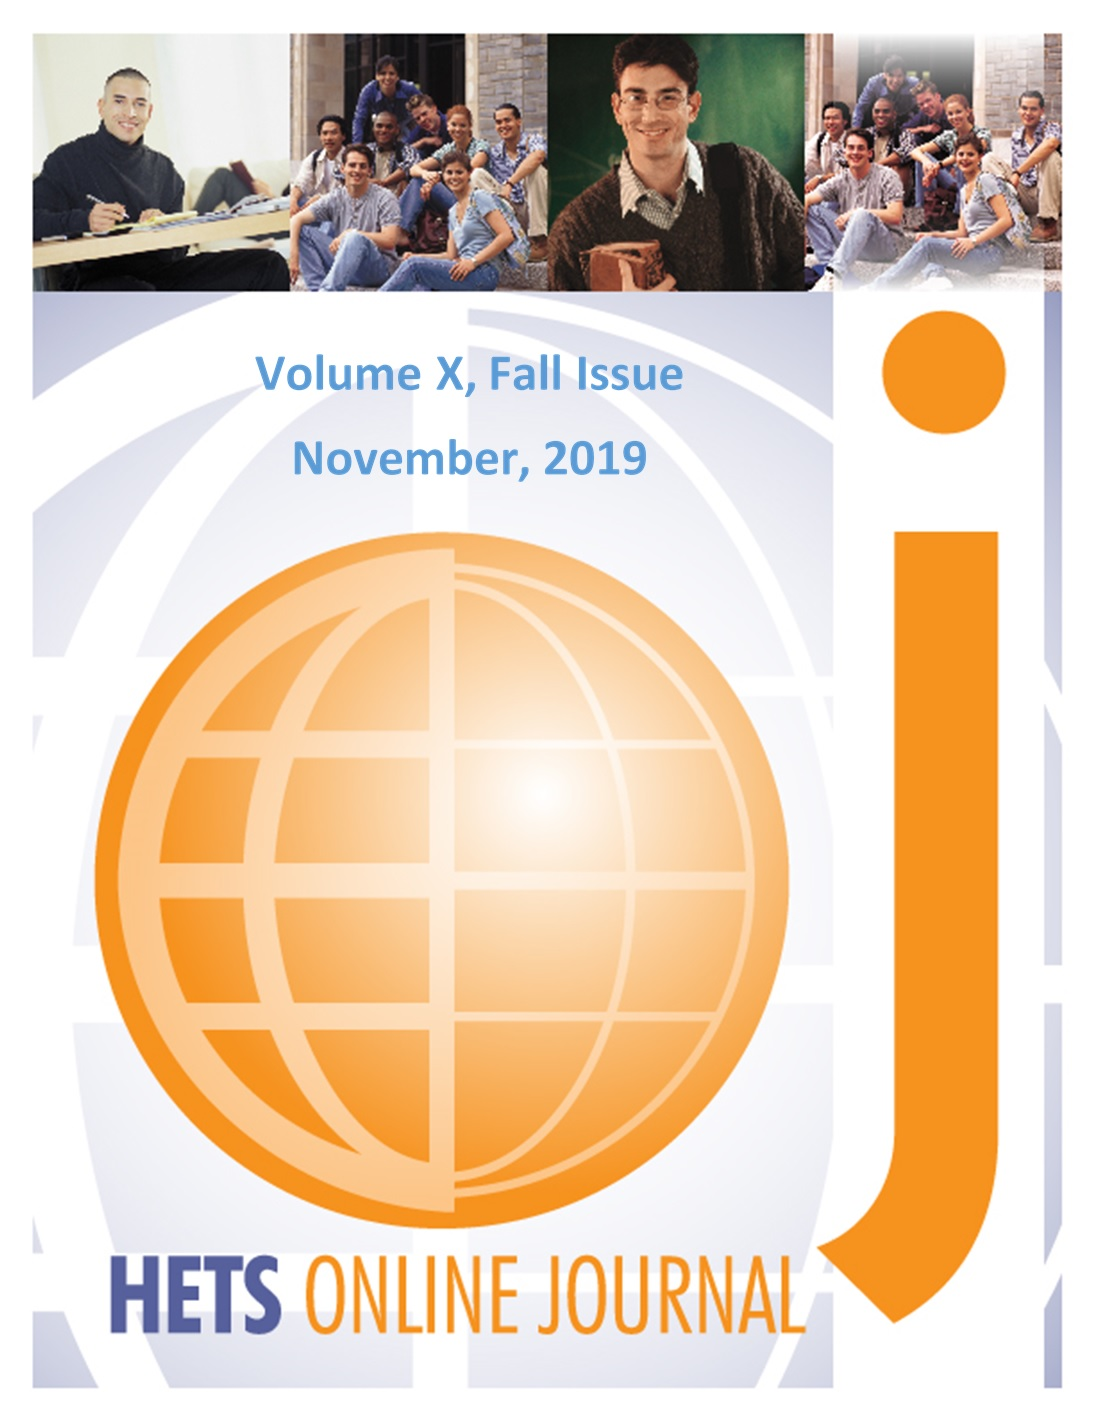 In a special collaboration with HACU, the Volume X of the HETS Online Journal has been published